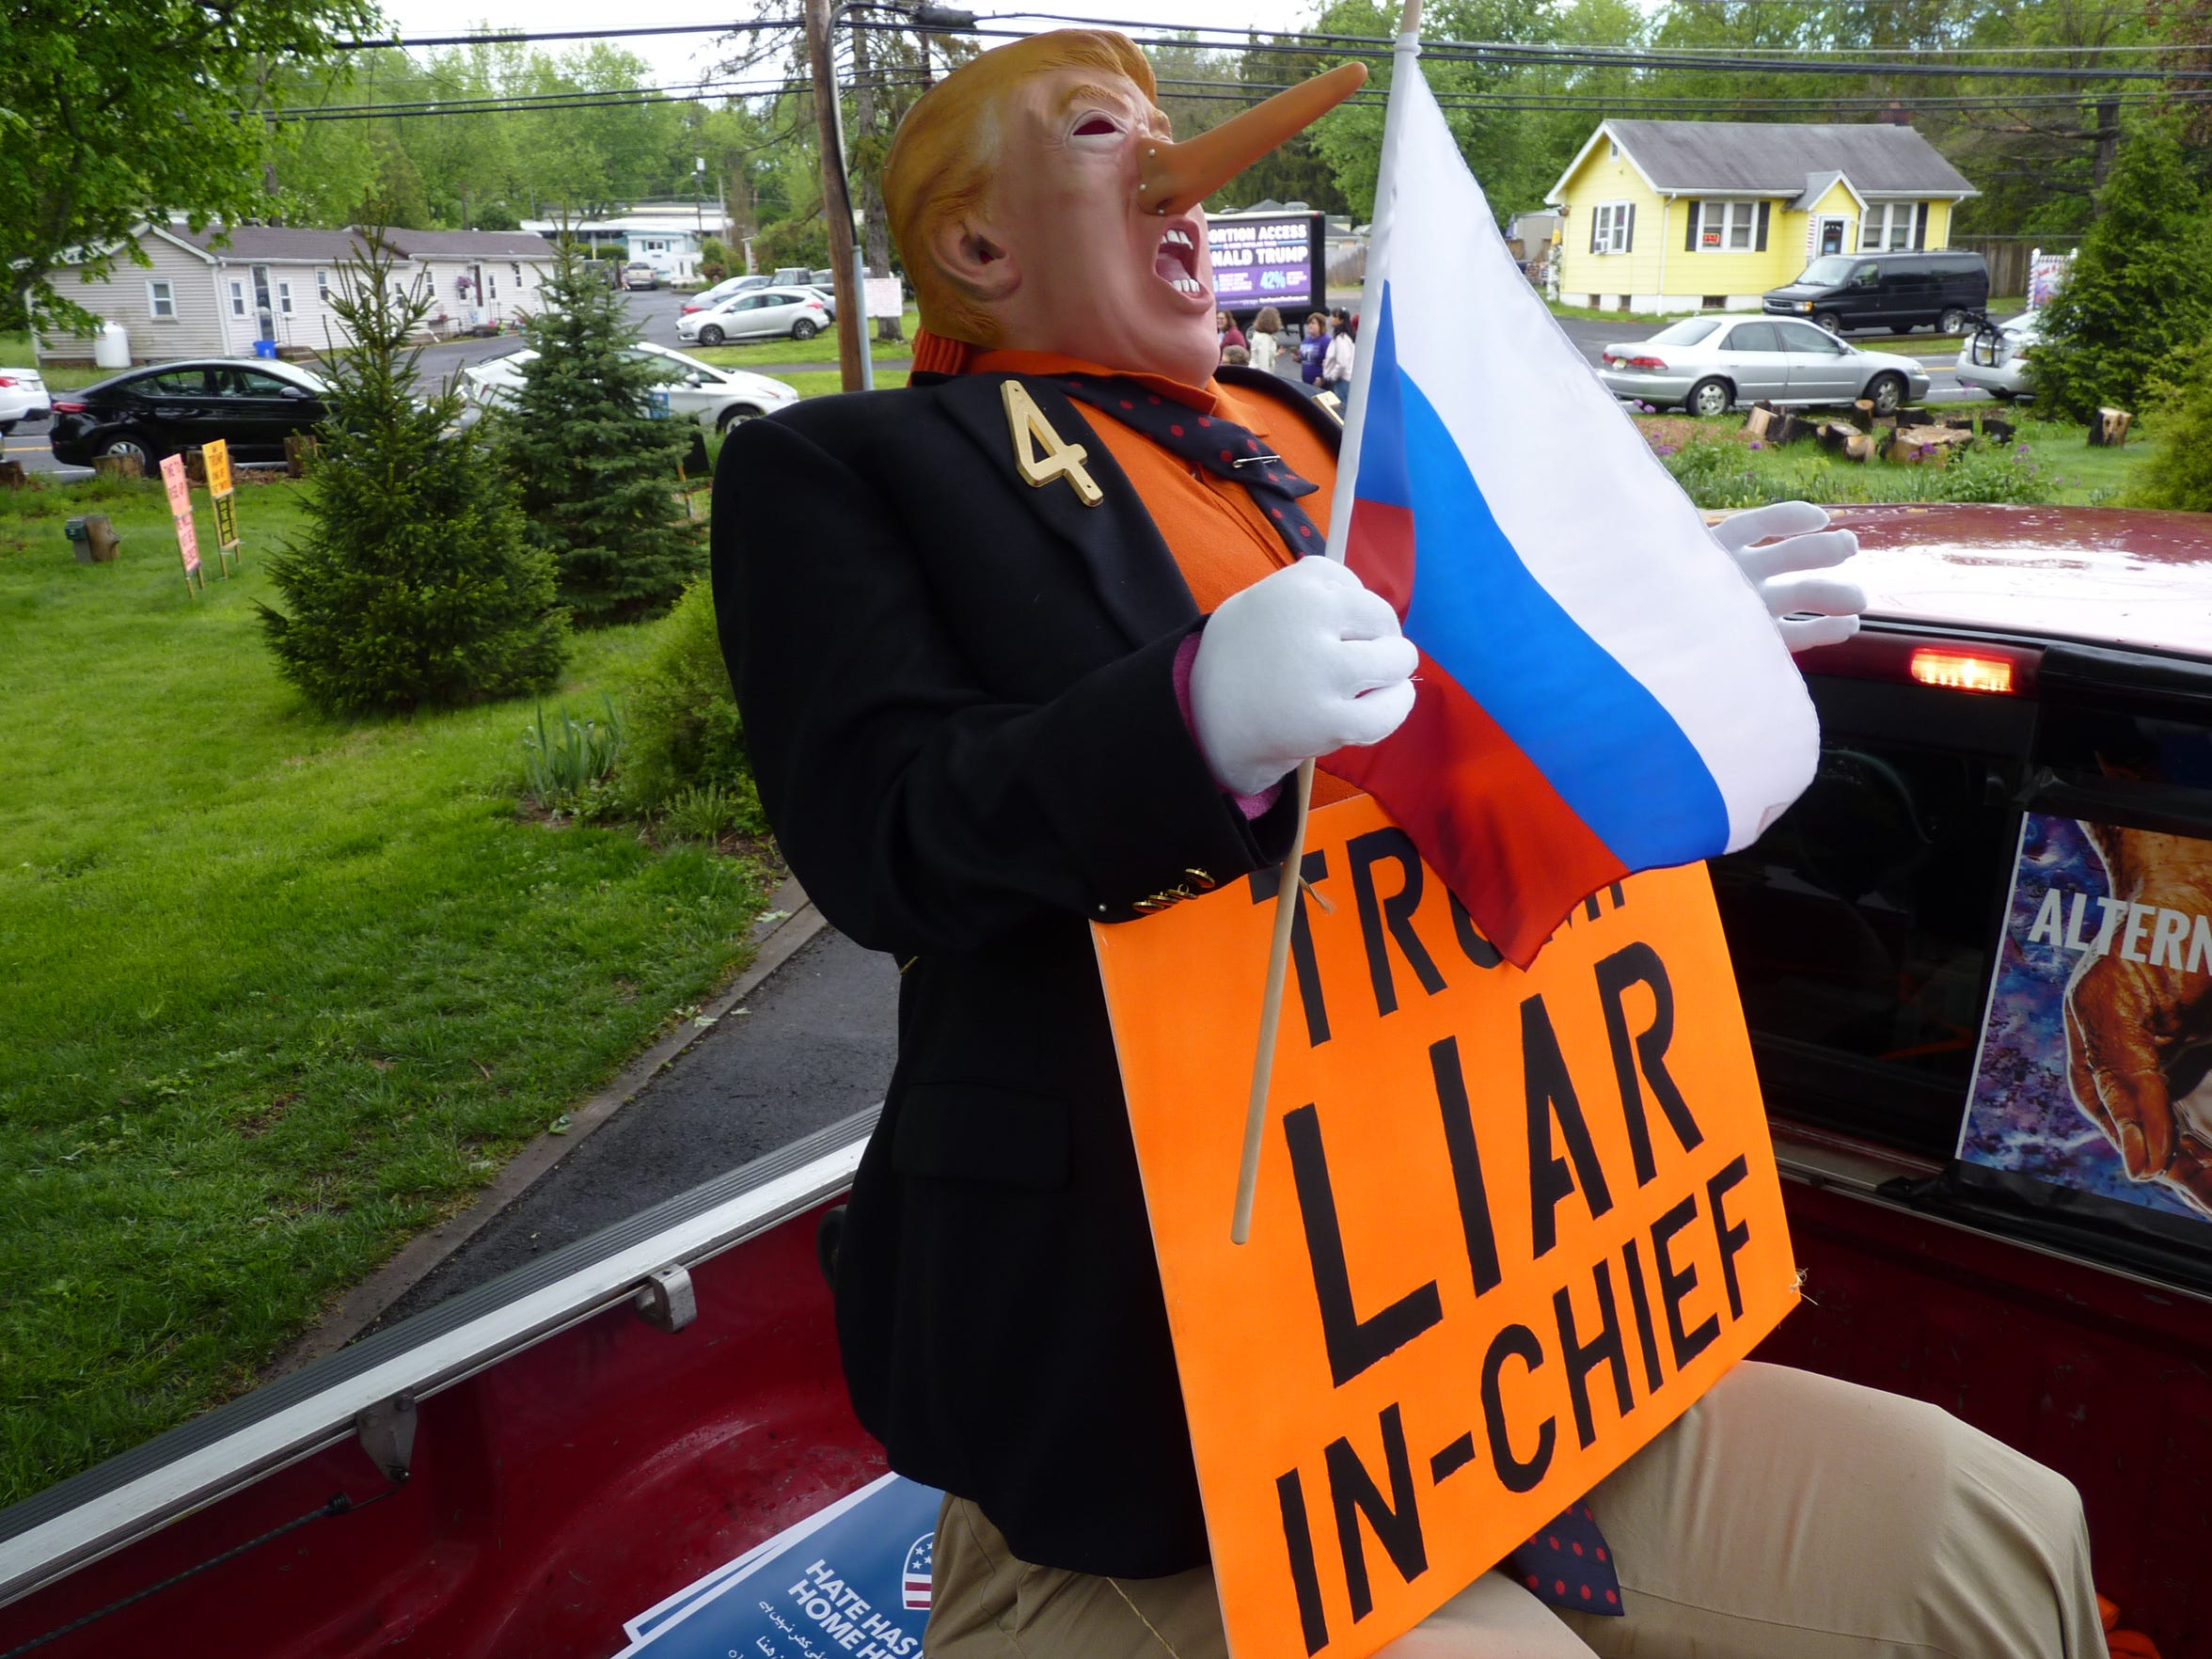 An anti-Donald Trump effigy in the back of the pickup